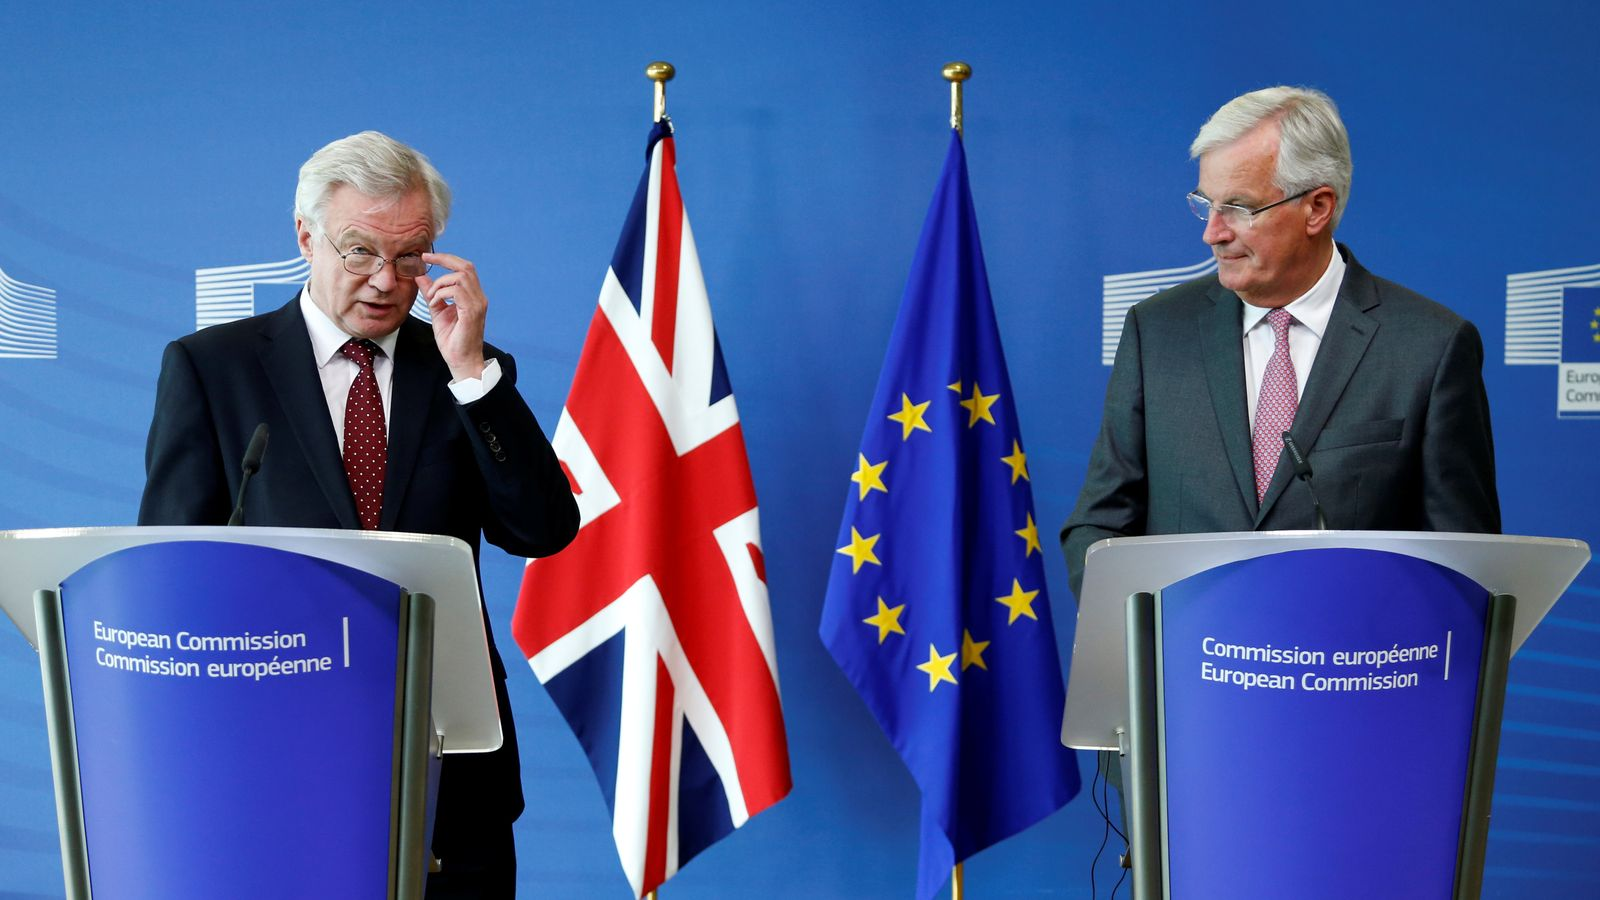 Brexit Talks Continue As EU Leaders Criticise UK's Approach